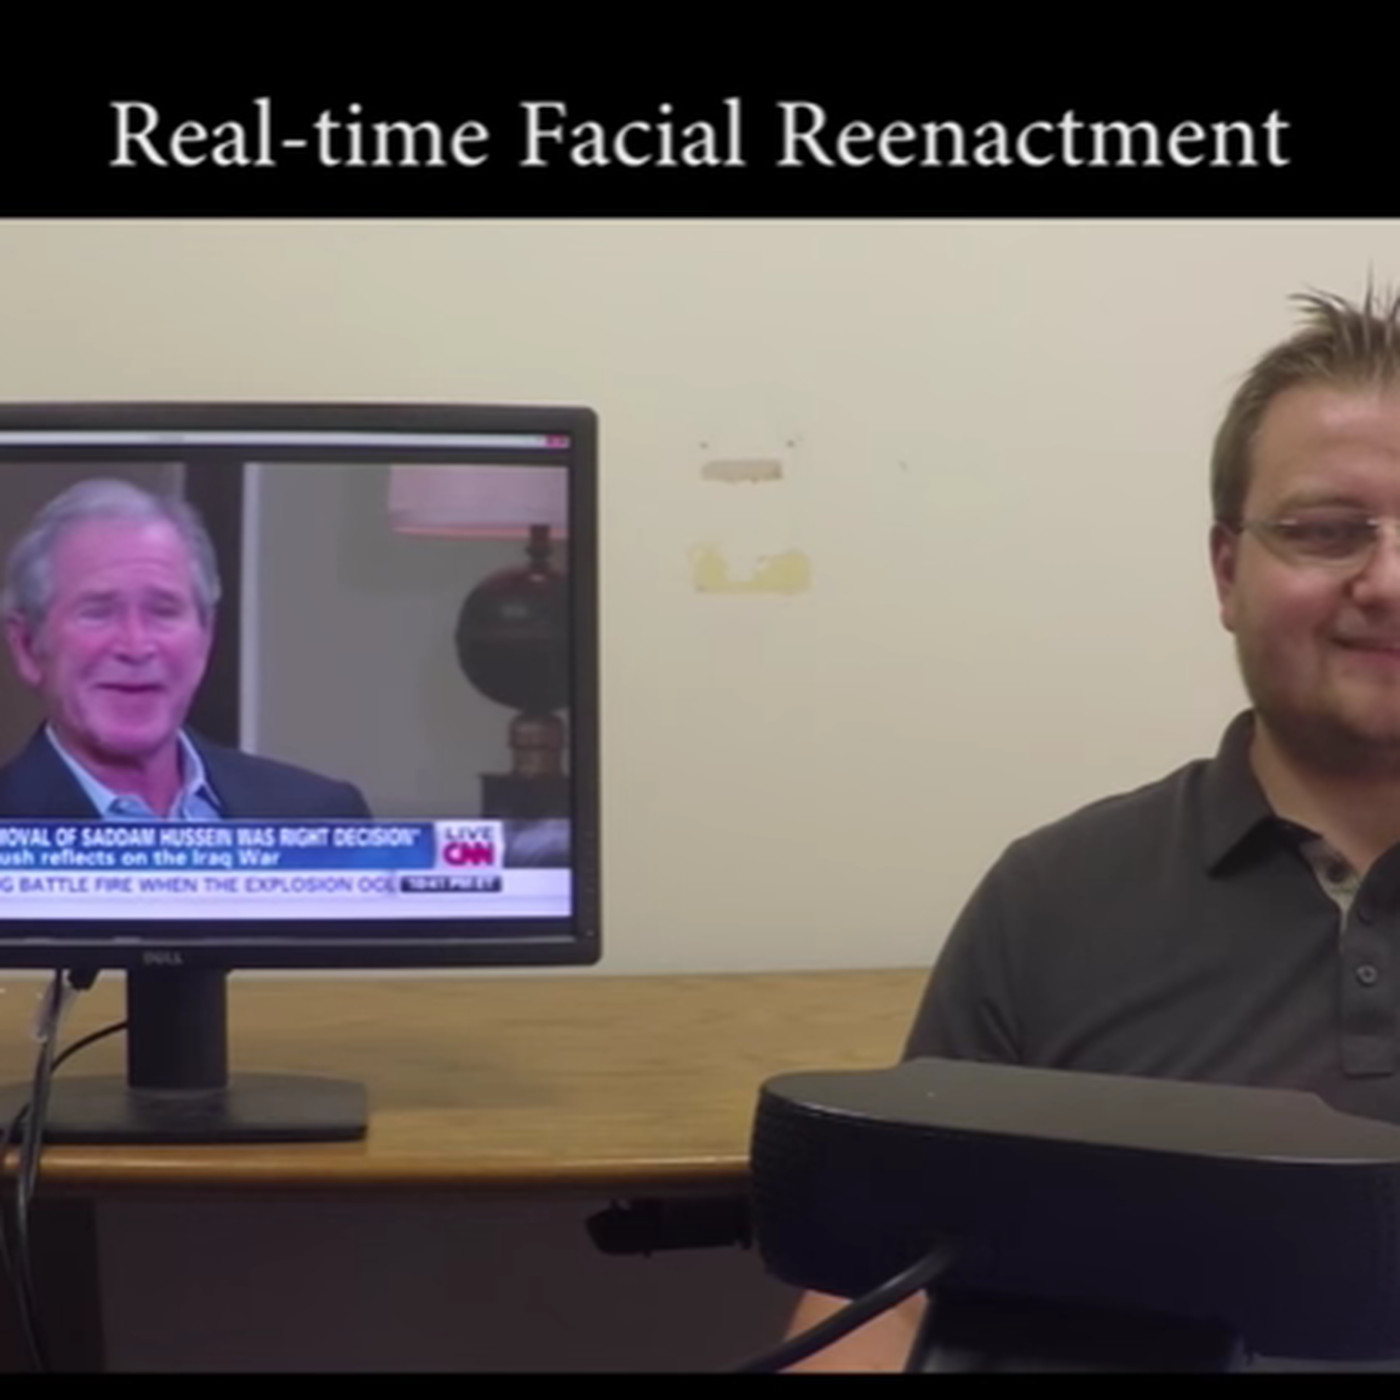 Watch a man manipulate George Bush's face in real time - The